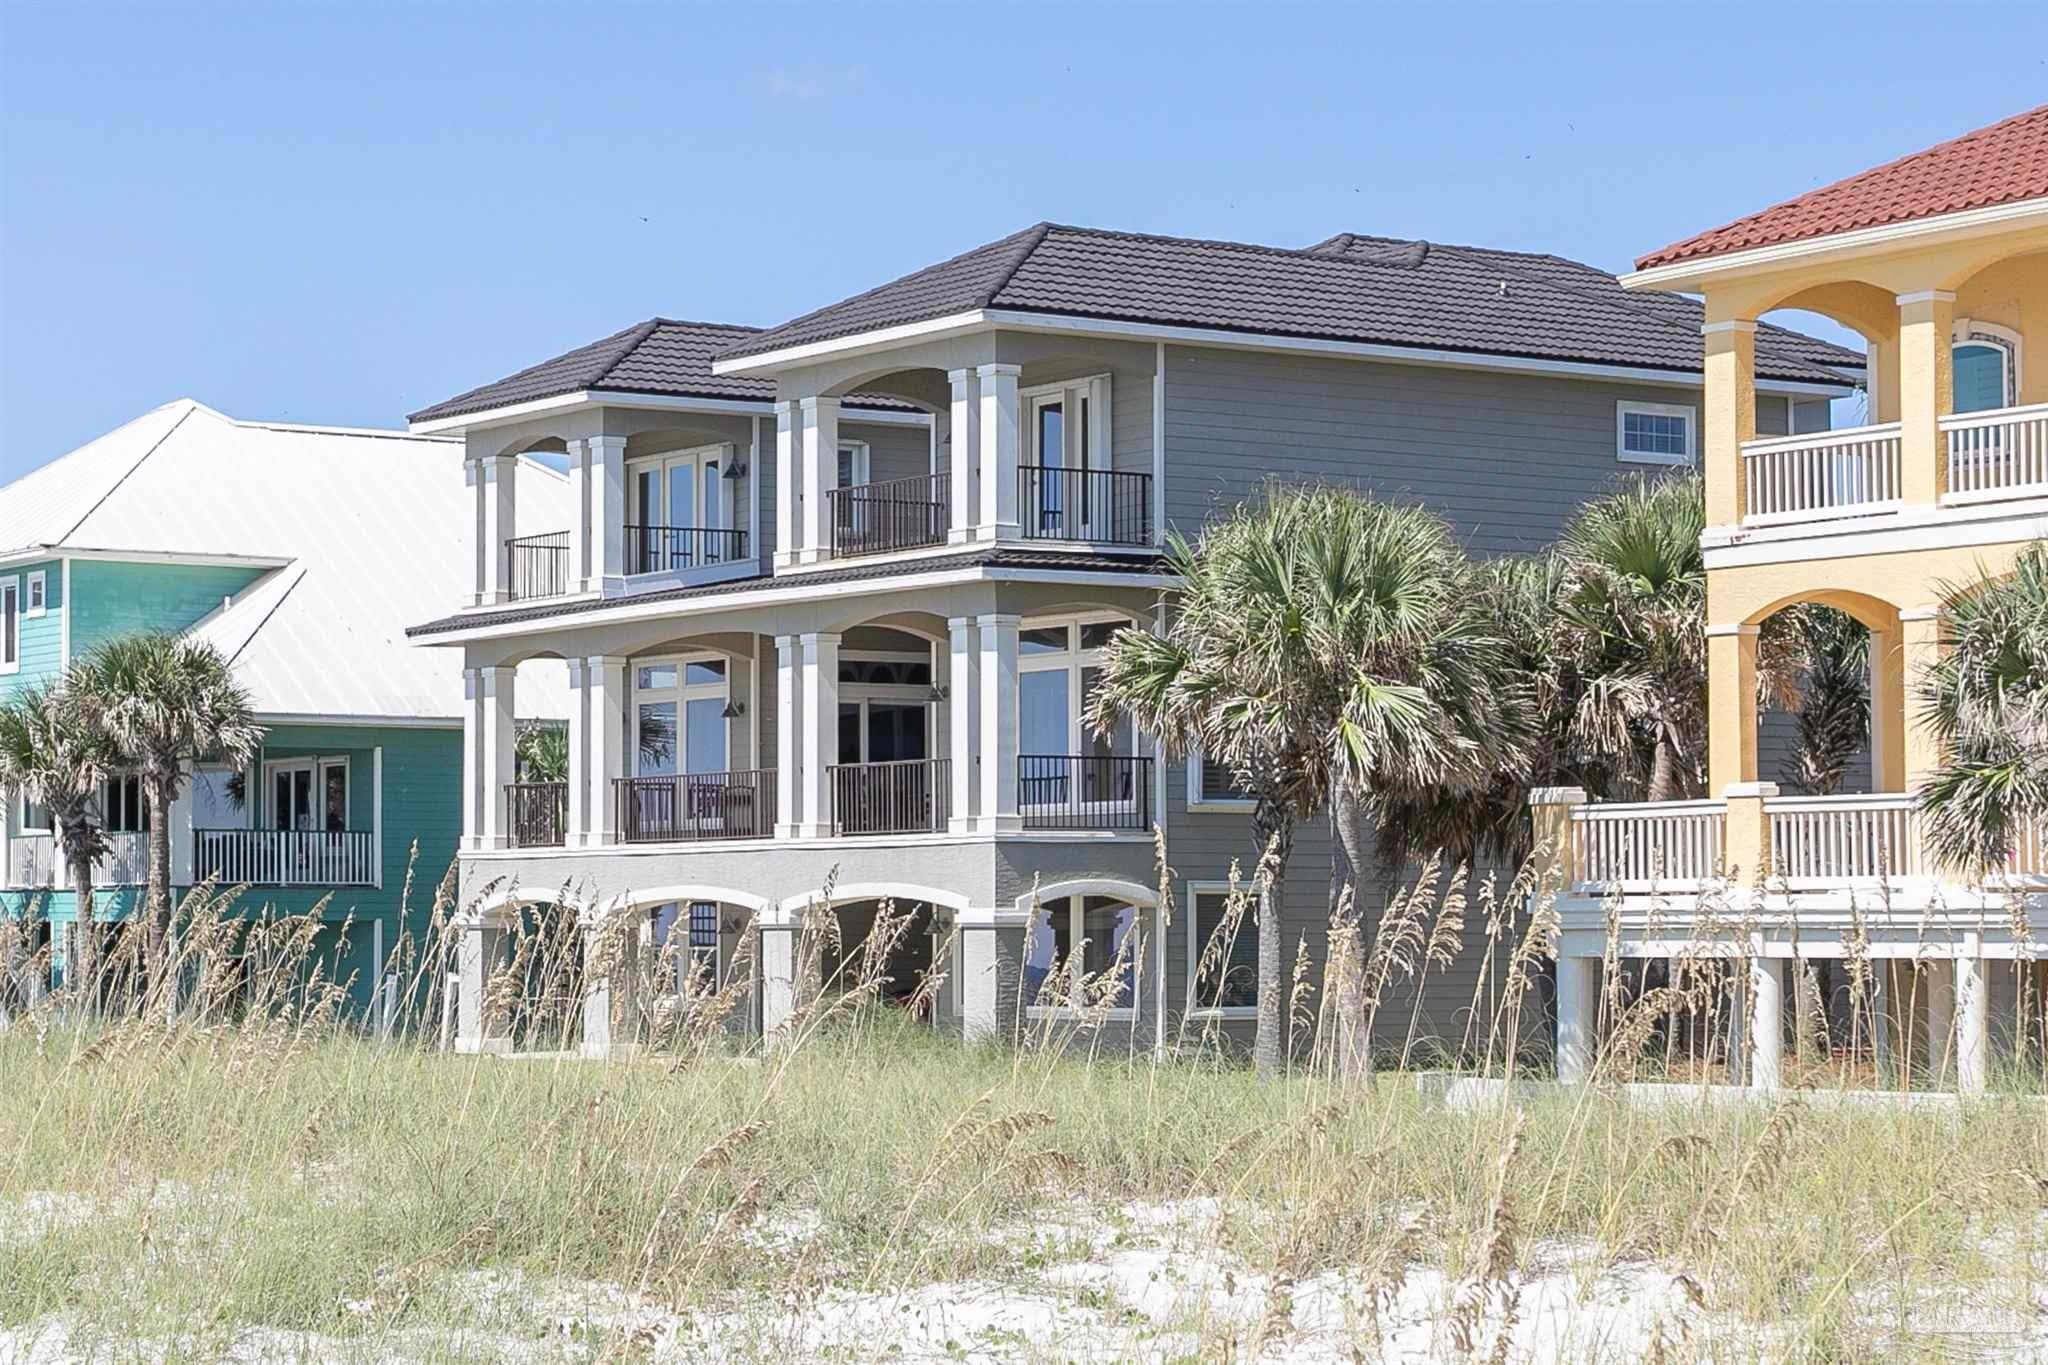 RARE OPPORTUNITY FOR PRIVATE BEACHFRONT LIVING IN THE HEART OF PERDIDO KEY! Parasol East is a secure, gated non-rental gulf-front community that encompasses 900'+ of sugar white sand beaches and just a short walk to Johnson Beach and the National Seashore! This coastal charmer sits on 75' of beachfront and boasts 5 bedrooms, 5.5 baths on 3 floors with a custom elevator servicing all levels. The 1,400+ sq.ft. outdoor dining and relaxation areas with deep covered porches allow for maximum privacy and unobstructed gulf-views! The open main living level is perfect for entertaining with views from every room, featuring hardwood floors, 10ft ceilings, and an abundance of natural light! The living room is complete with wet bar, wine cooler, and ice maker! The kitchen exudes elegance with granite countertops, stainless steel appliances, 2 Bosch side by side ovens, dishwasher, Viking 5 burner stove, commercial grade exhaust accentuated by stunning mantle and tumble marbled detailing, Rohl nickel faucets, 8' wide custom pantry, oversized granite island with prep sink, and bar seating which allows guests to join the kitchen experience. Tucked behind the kitchen is a quiet nook perfect for an office! The main level has a secluded 2nd master suite with en-suite bathroom tucked away for extra privacy. The exquisite custom curved staircase leads to a 3rd level living area, 2nd office, master suite and 2 guest suites. Gulf front master suite includes private covered porch, his/hers closets, en-suite bath, steam shower, dual vanities, and luxury spa tub. The 1st Floor family/game room is where all the fun happens after a long day at the beach! Guests and family can enjoy the tv room, kitchenette, large guest bedroom/bath and add'l full bath - leading outside to outdoor covered patio just steps from the sand. Come home to this amazing beach getaway where paradise awaits!